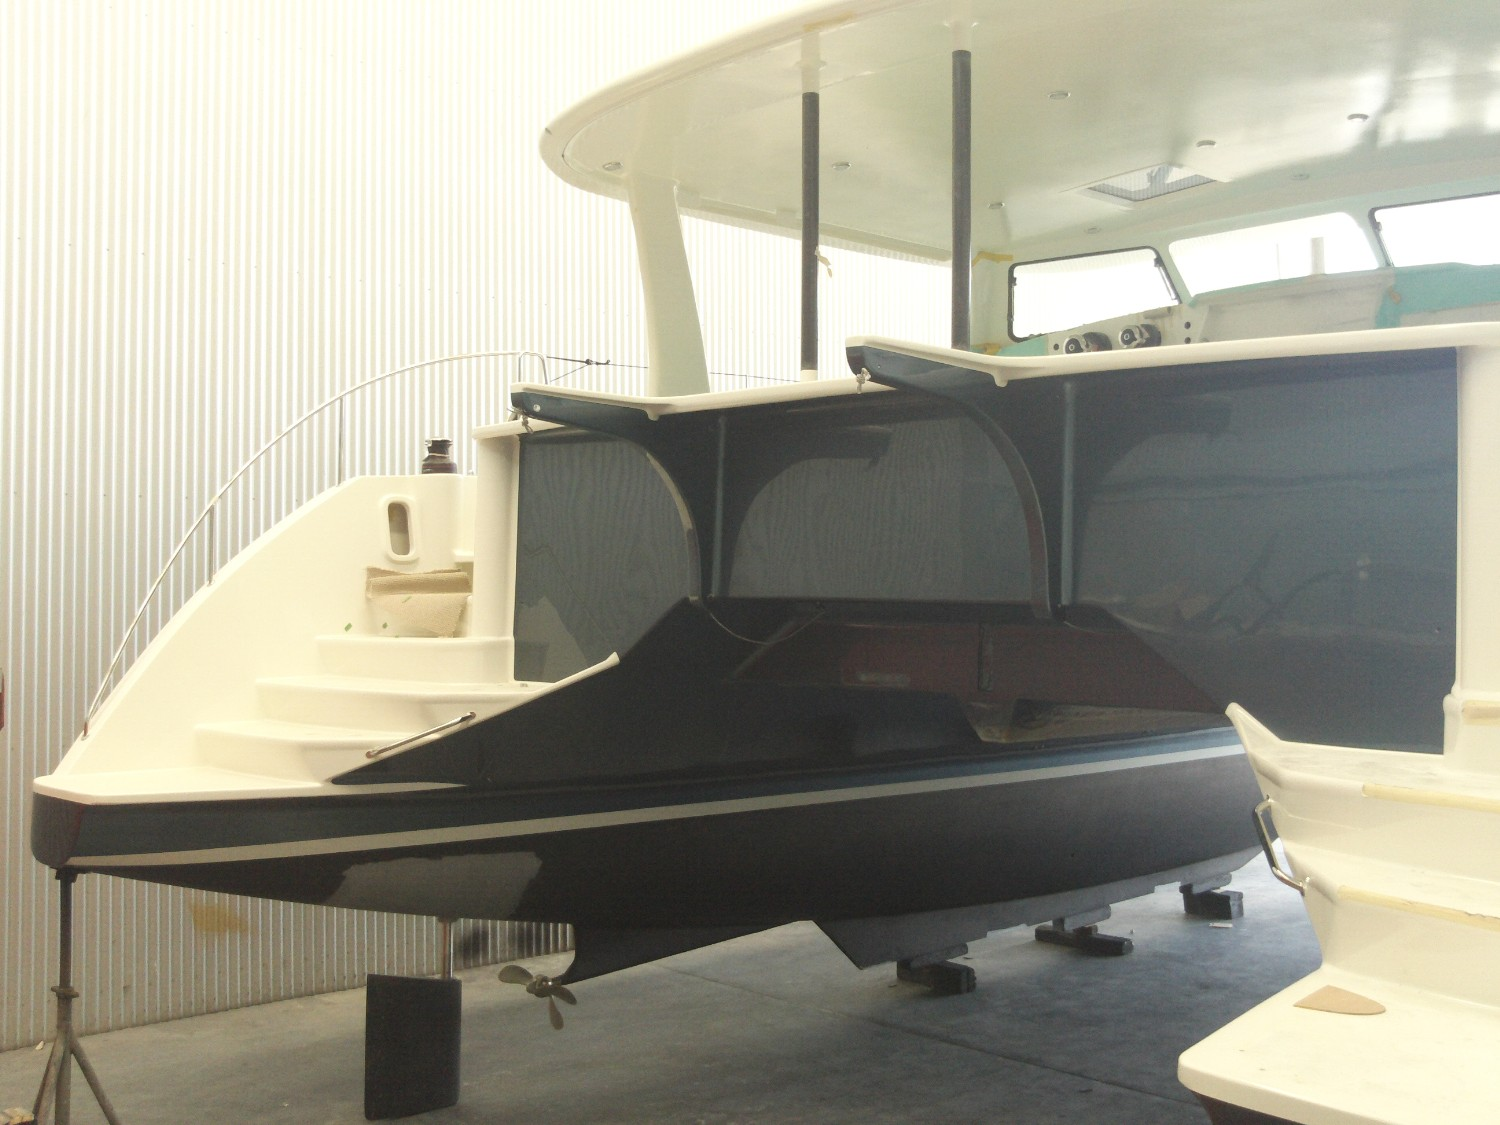 Click image for larger version  Name:FF46 stern.JPG Views:221 Size:271.8 KB ID:96547